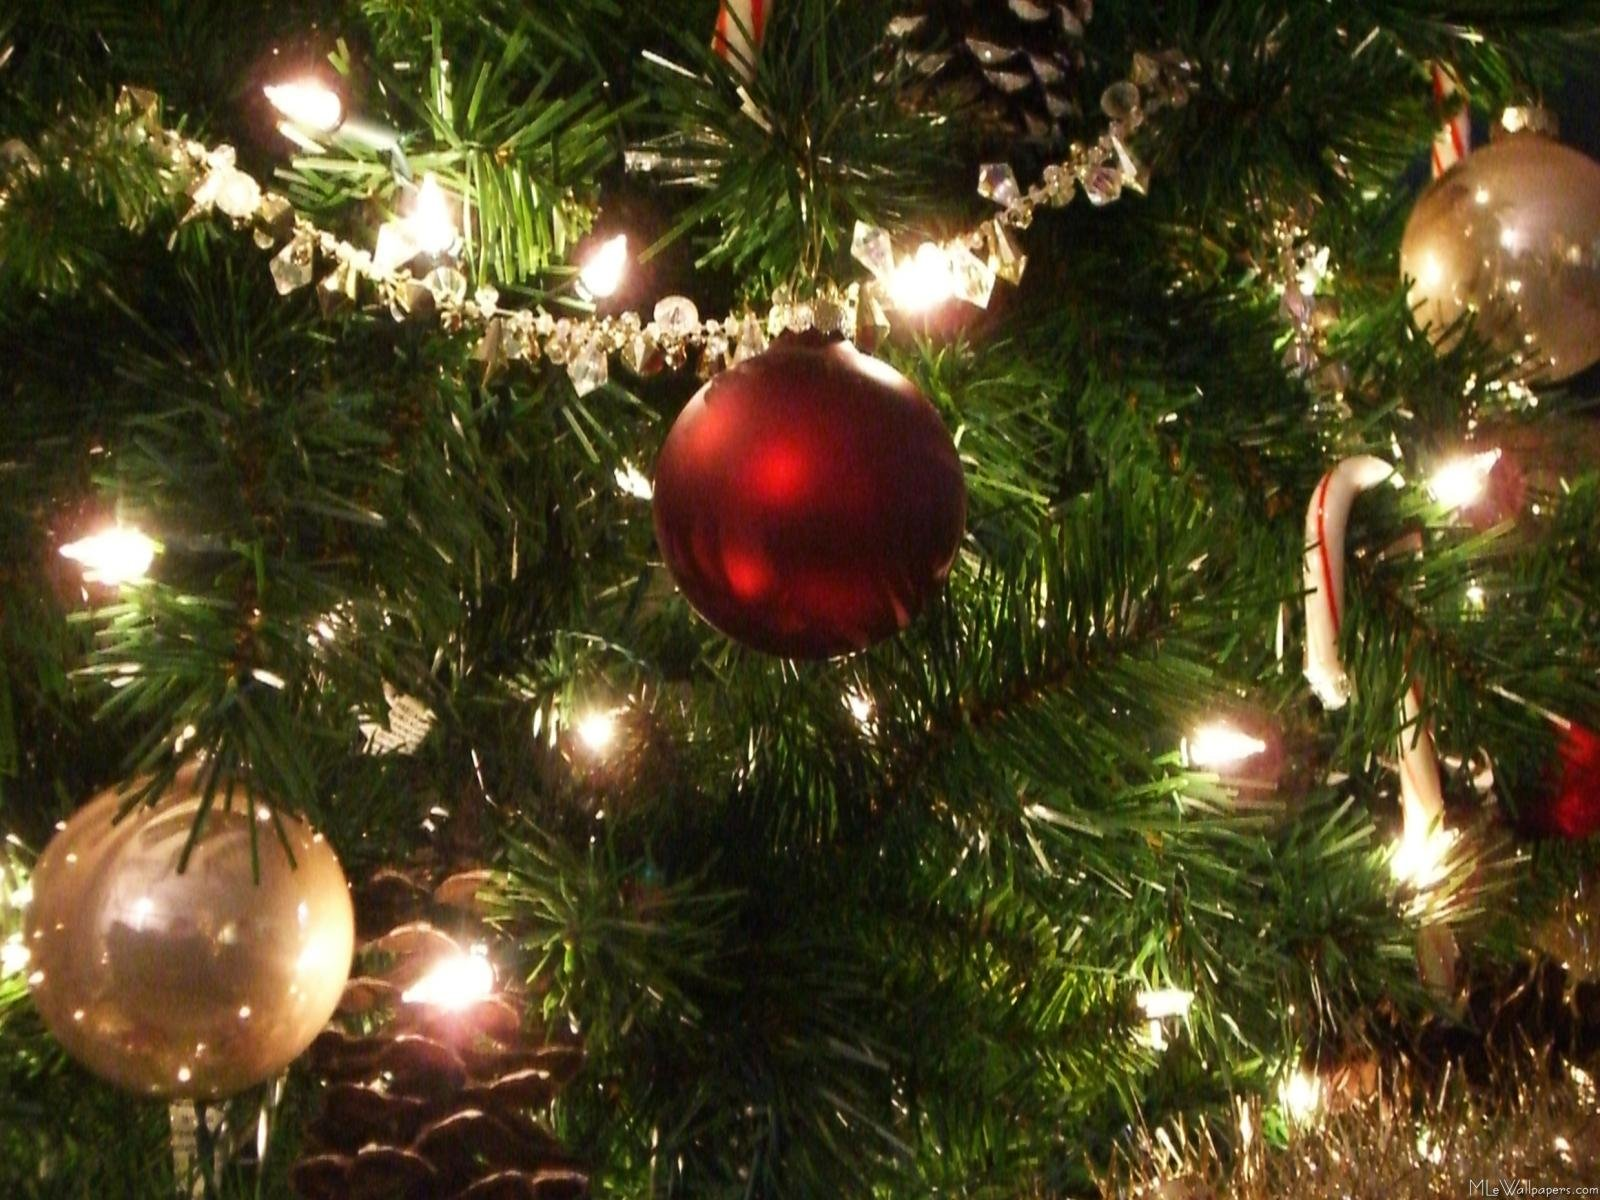 Christmas Ornaments - Shatterproof Christmas Balls, 4 Colors and 4 Finishes, Set of 32